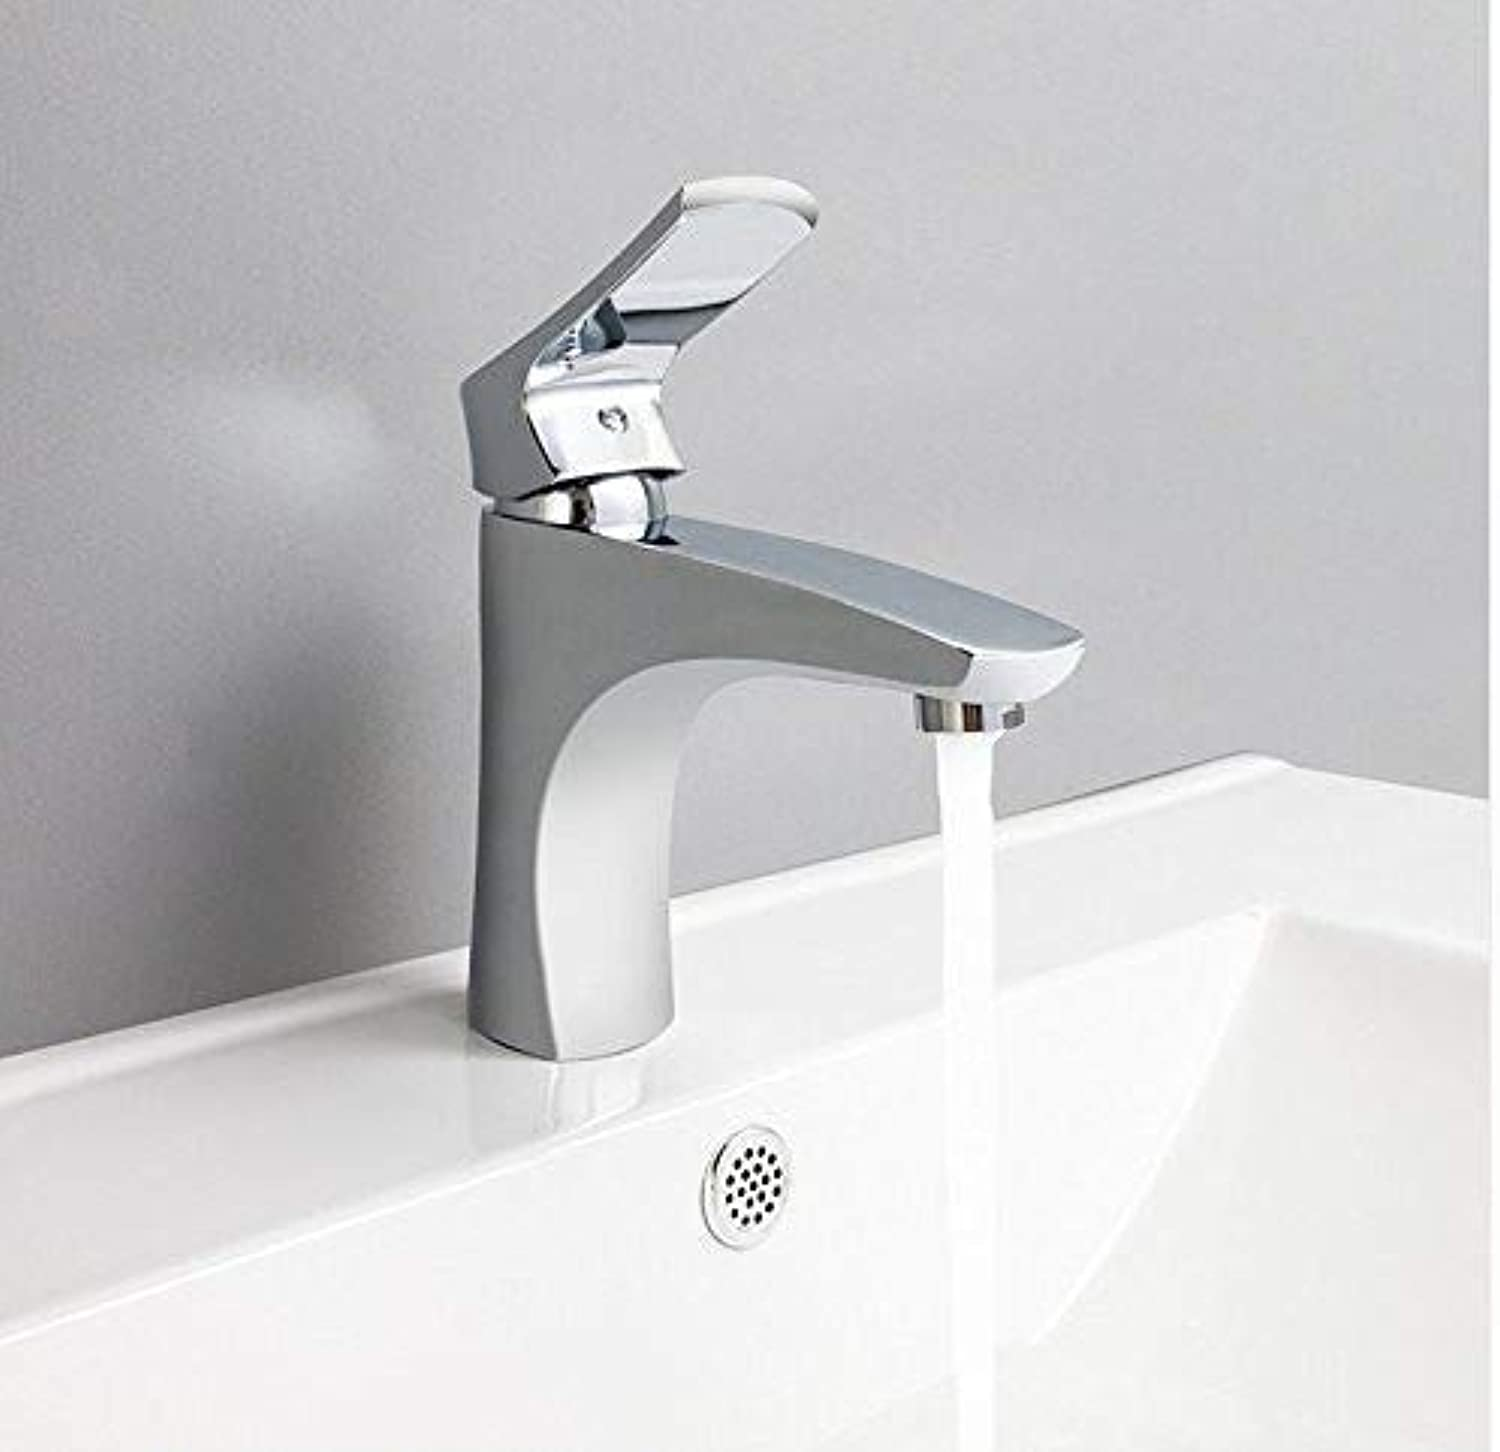 Oudan Taps Faucet Bathroom Basin Taps Basin Mixer Waterfall Bathroom Chrome Cold And Hot Water Tap Deck Mounted Taps (color   -, Size   -)